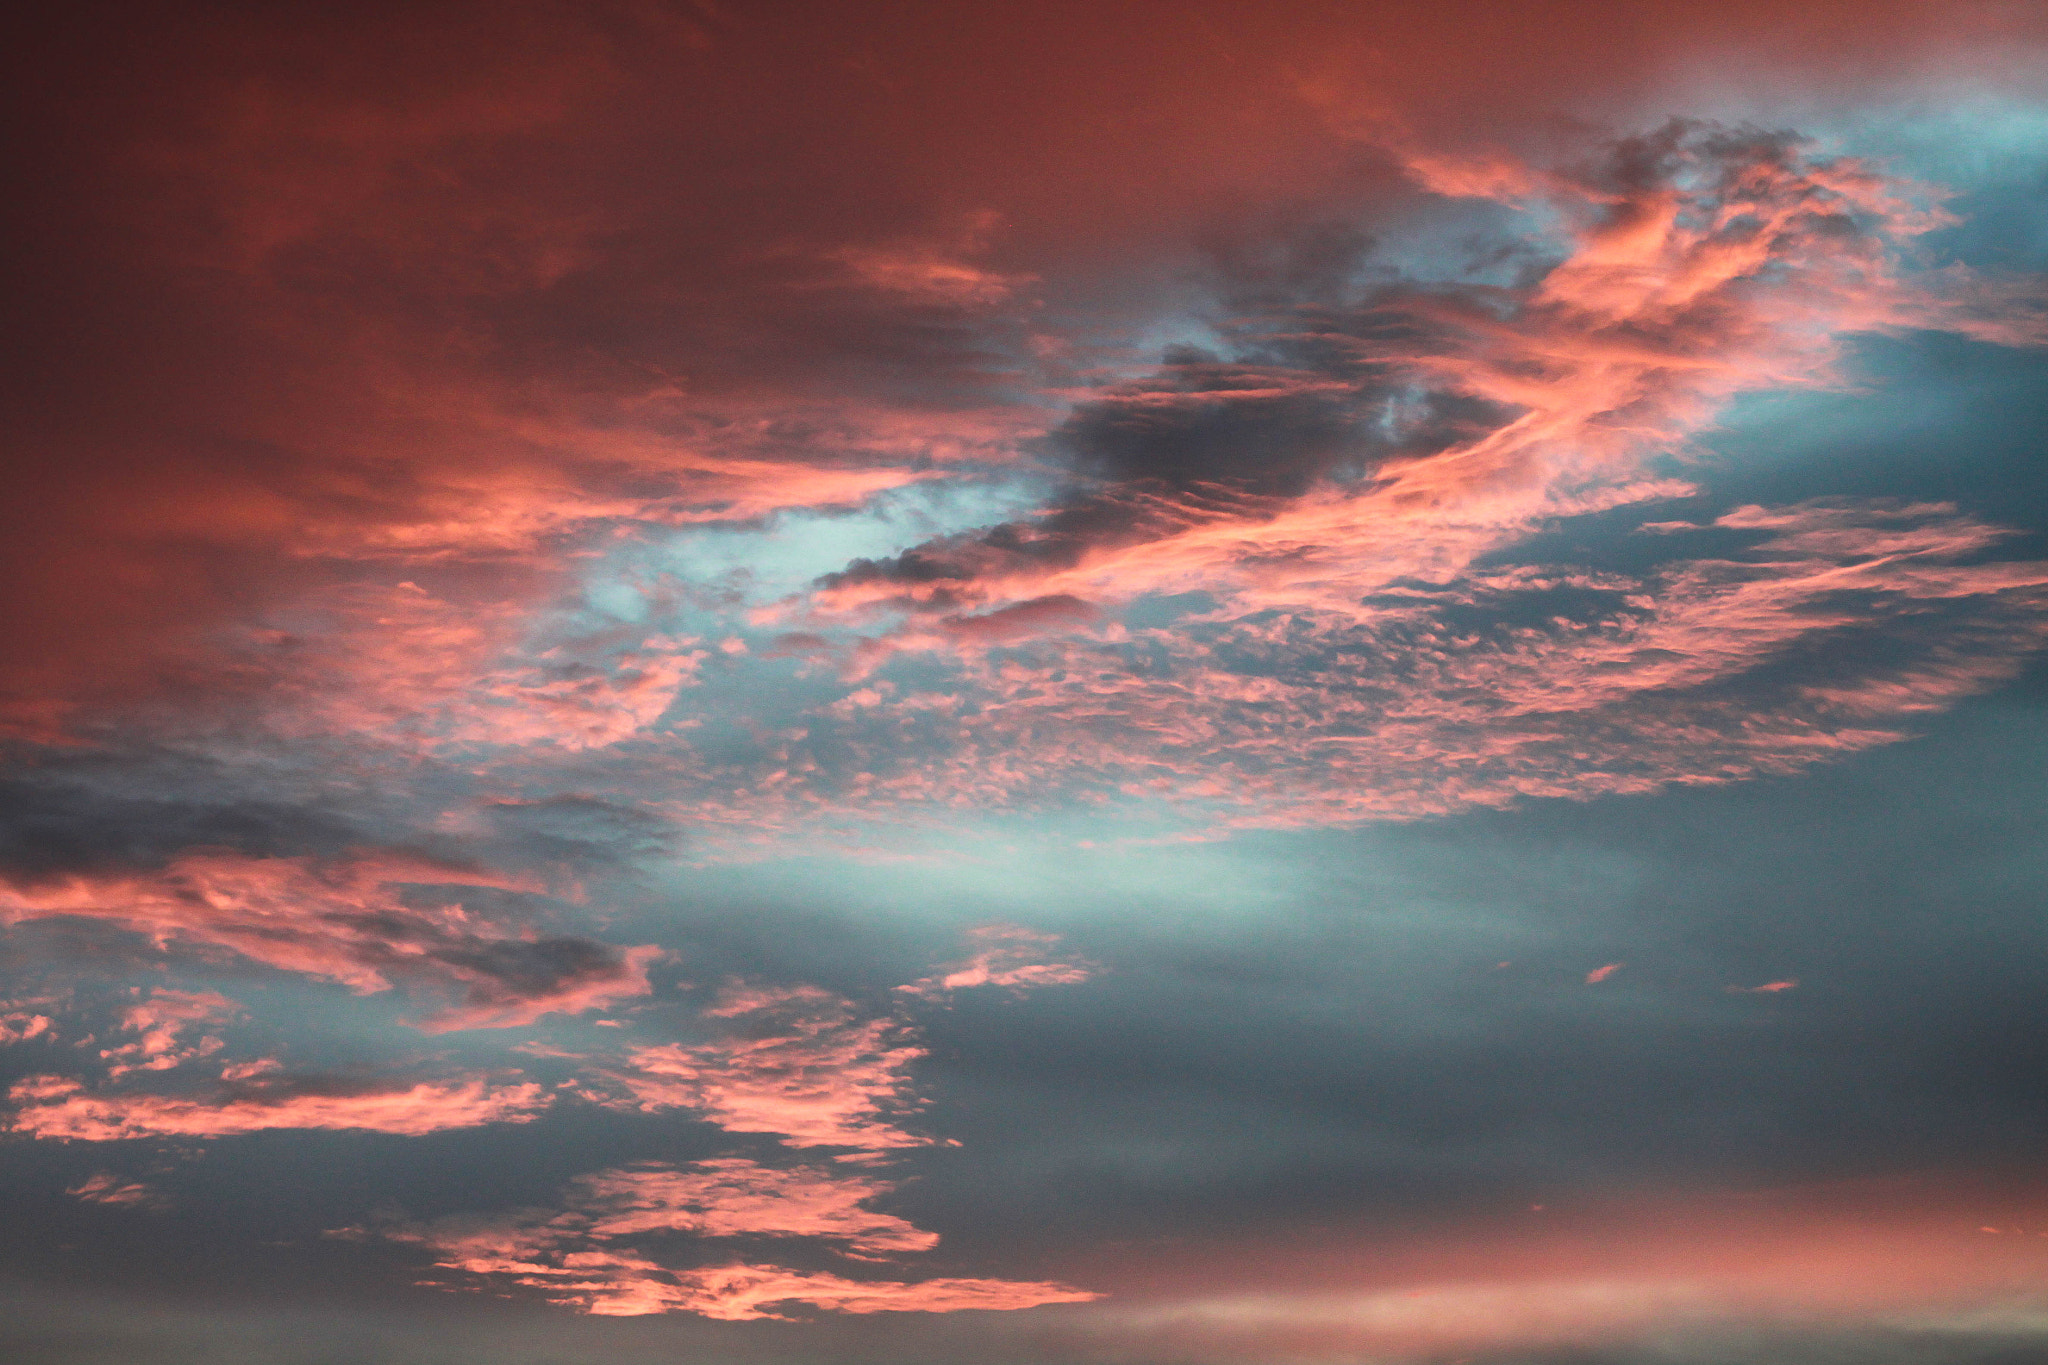 Photograph floating in the clouds by Heshan Jayakody on 500px